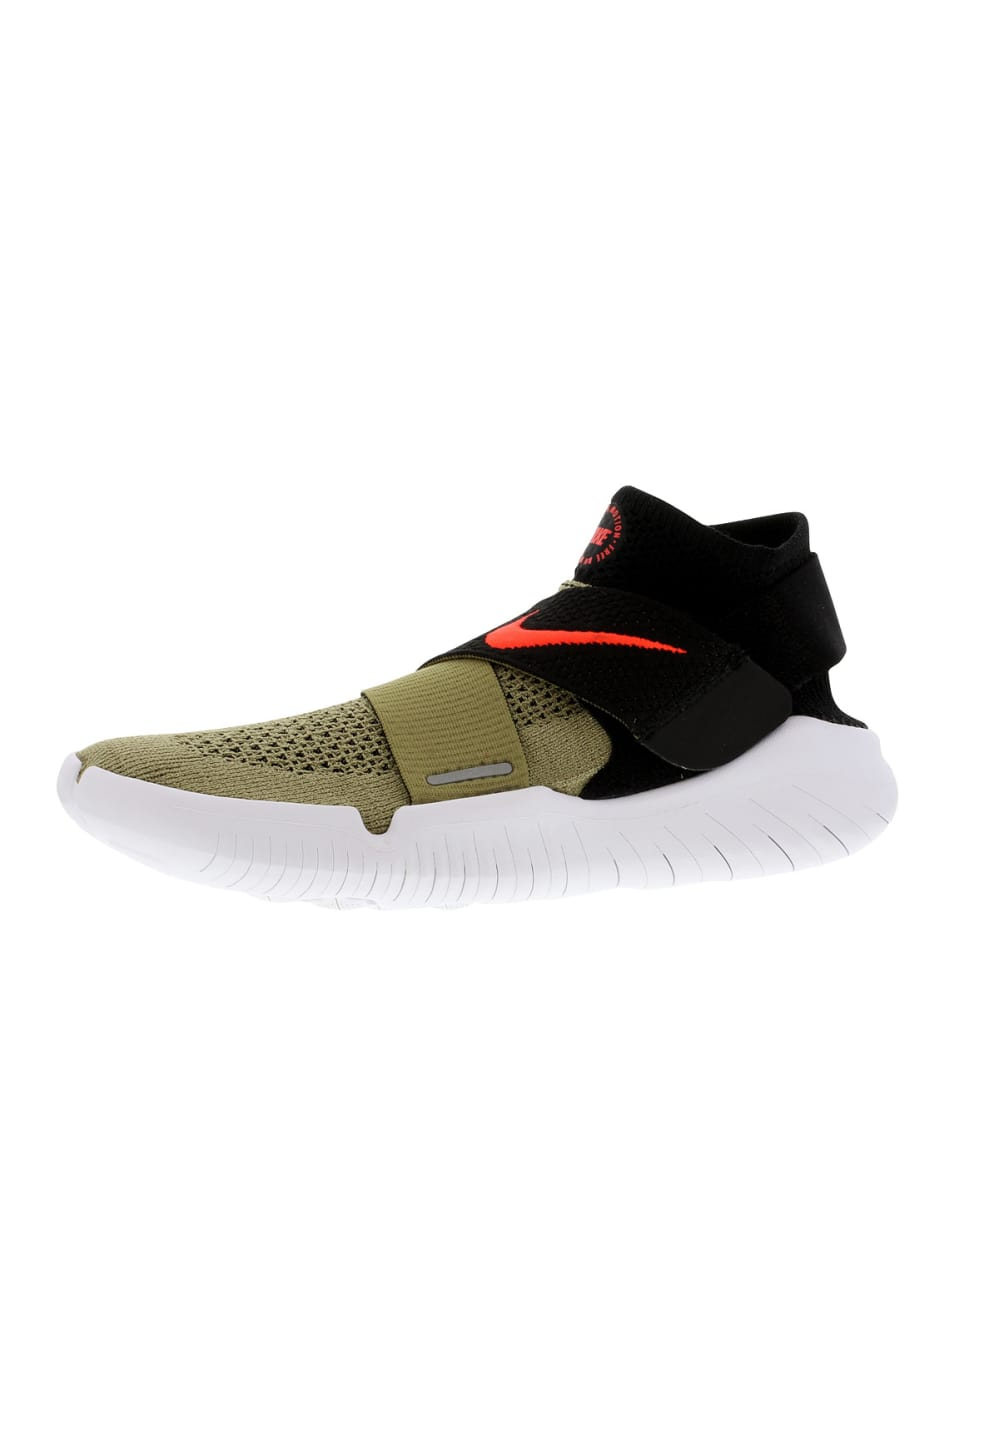 new product 8767c 18751 Previous. Next. Nike. Free RN Motion Flyknit 2018 - Running shoes for Men